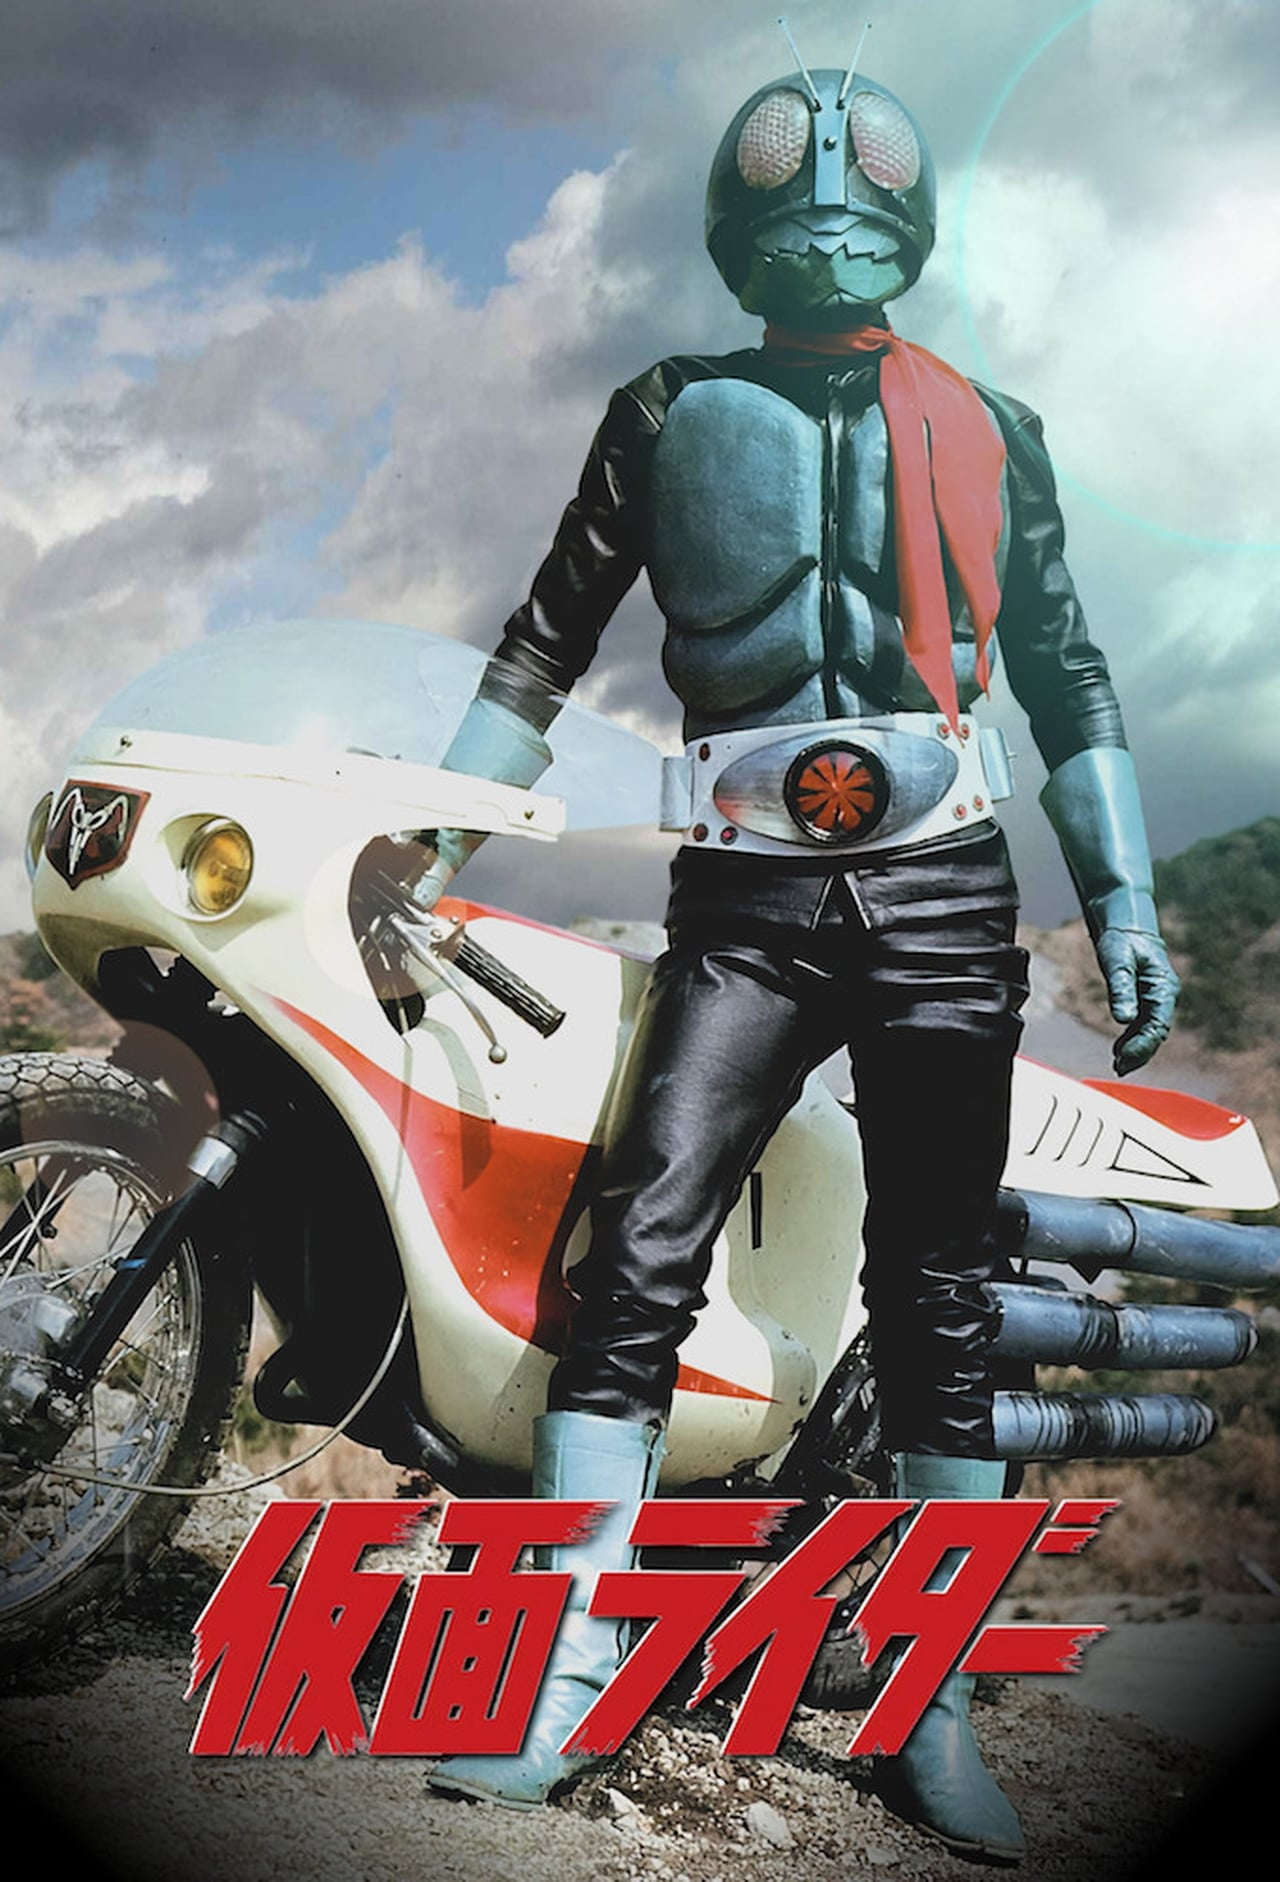 Watch Kamen Rider Season 1 Online